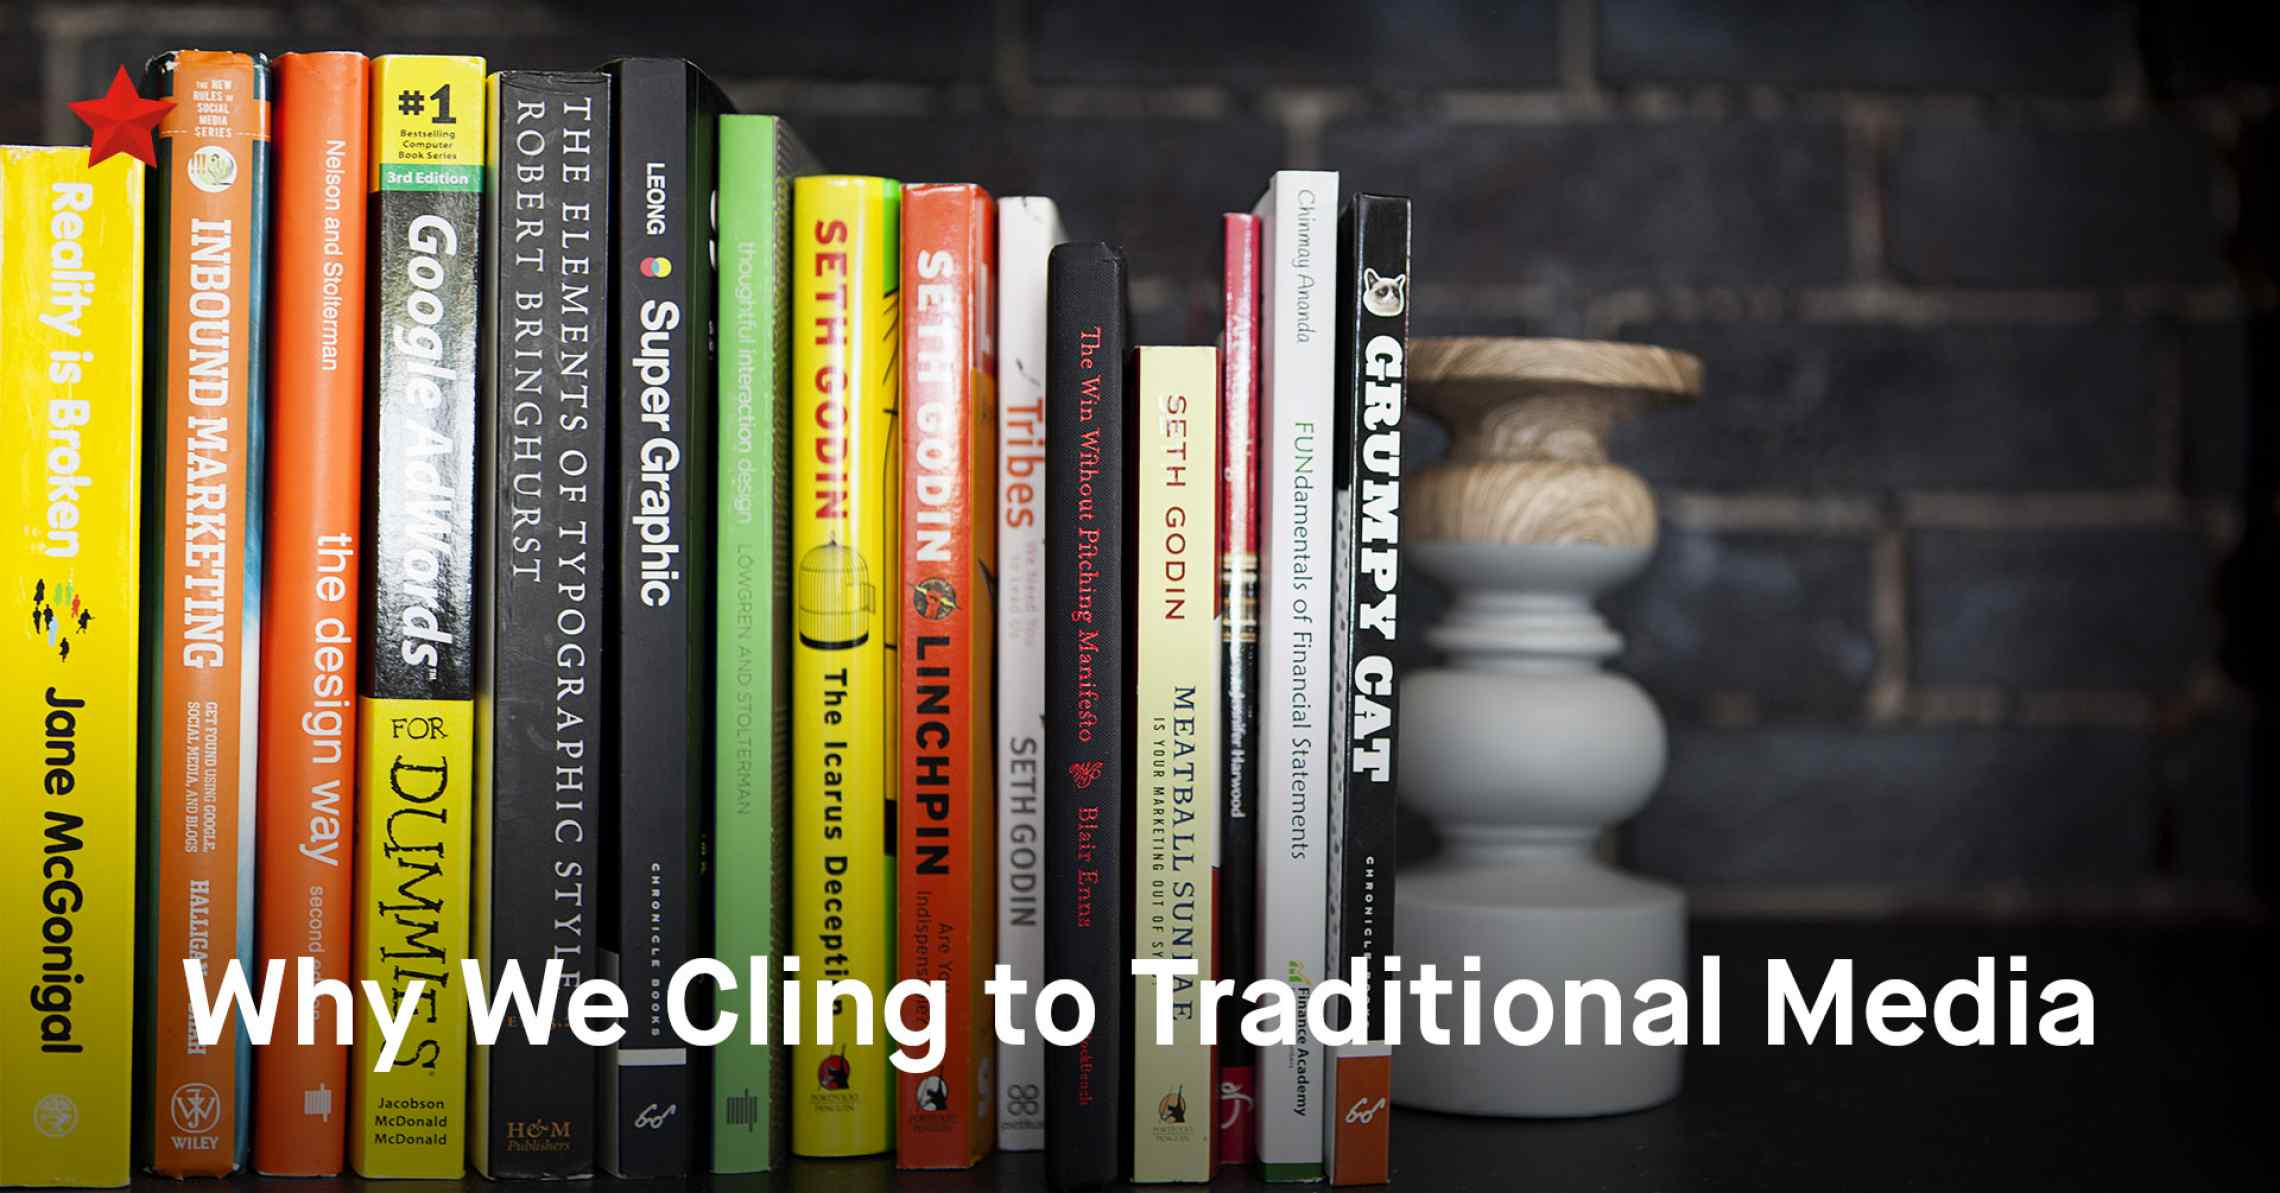 The Real Reason We Cling to Traditional Marketing